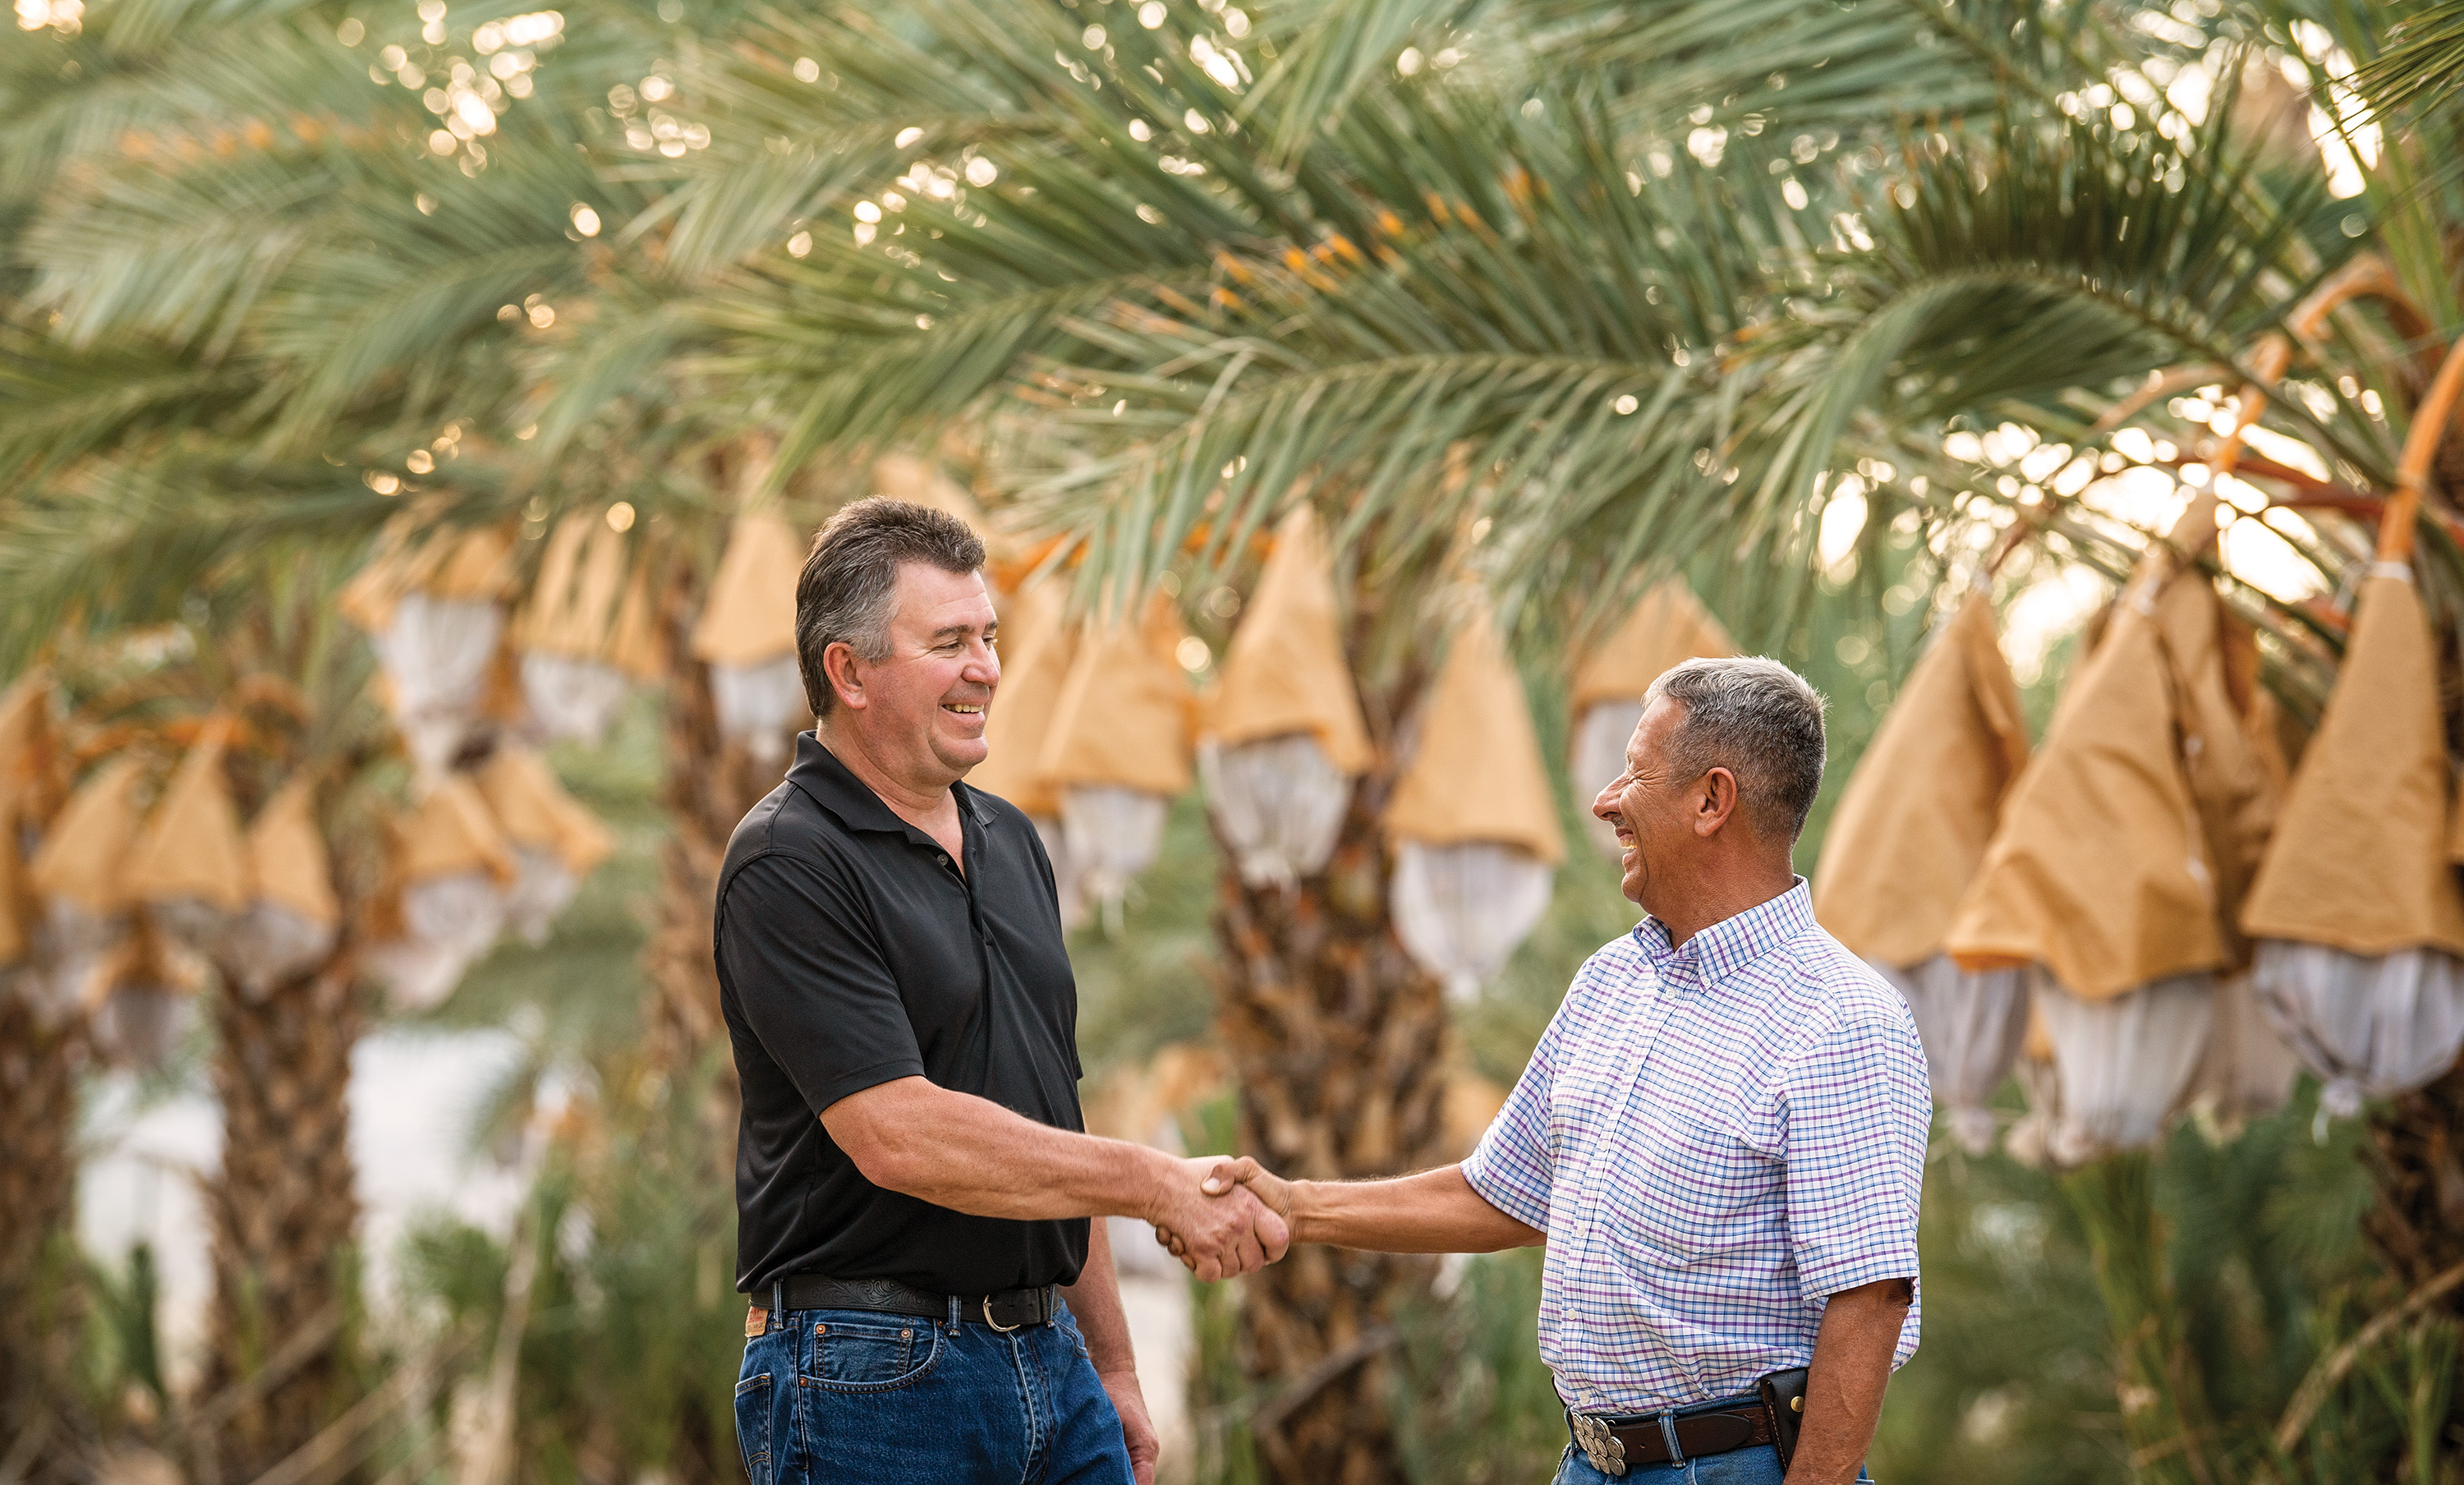 Date palm farmer and lender